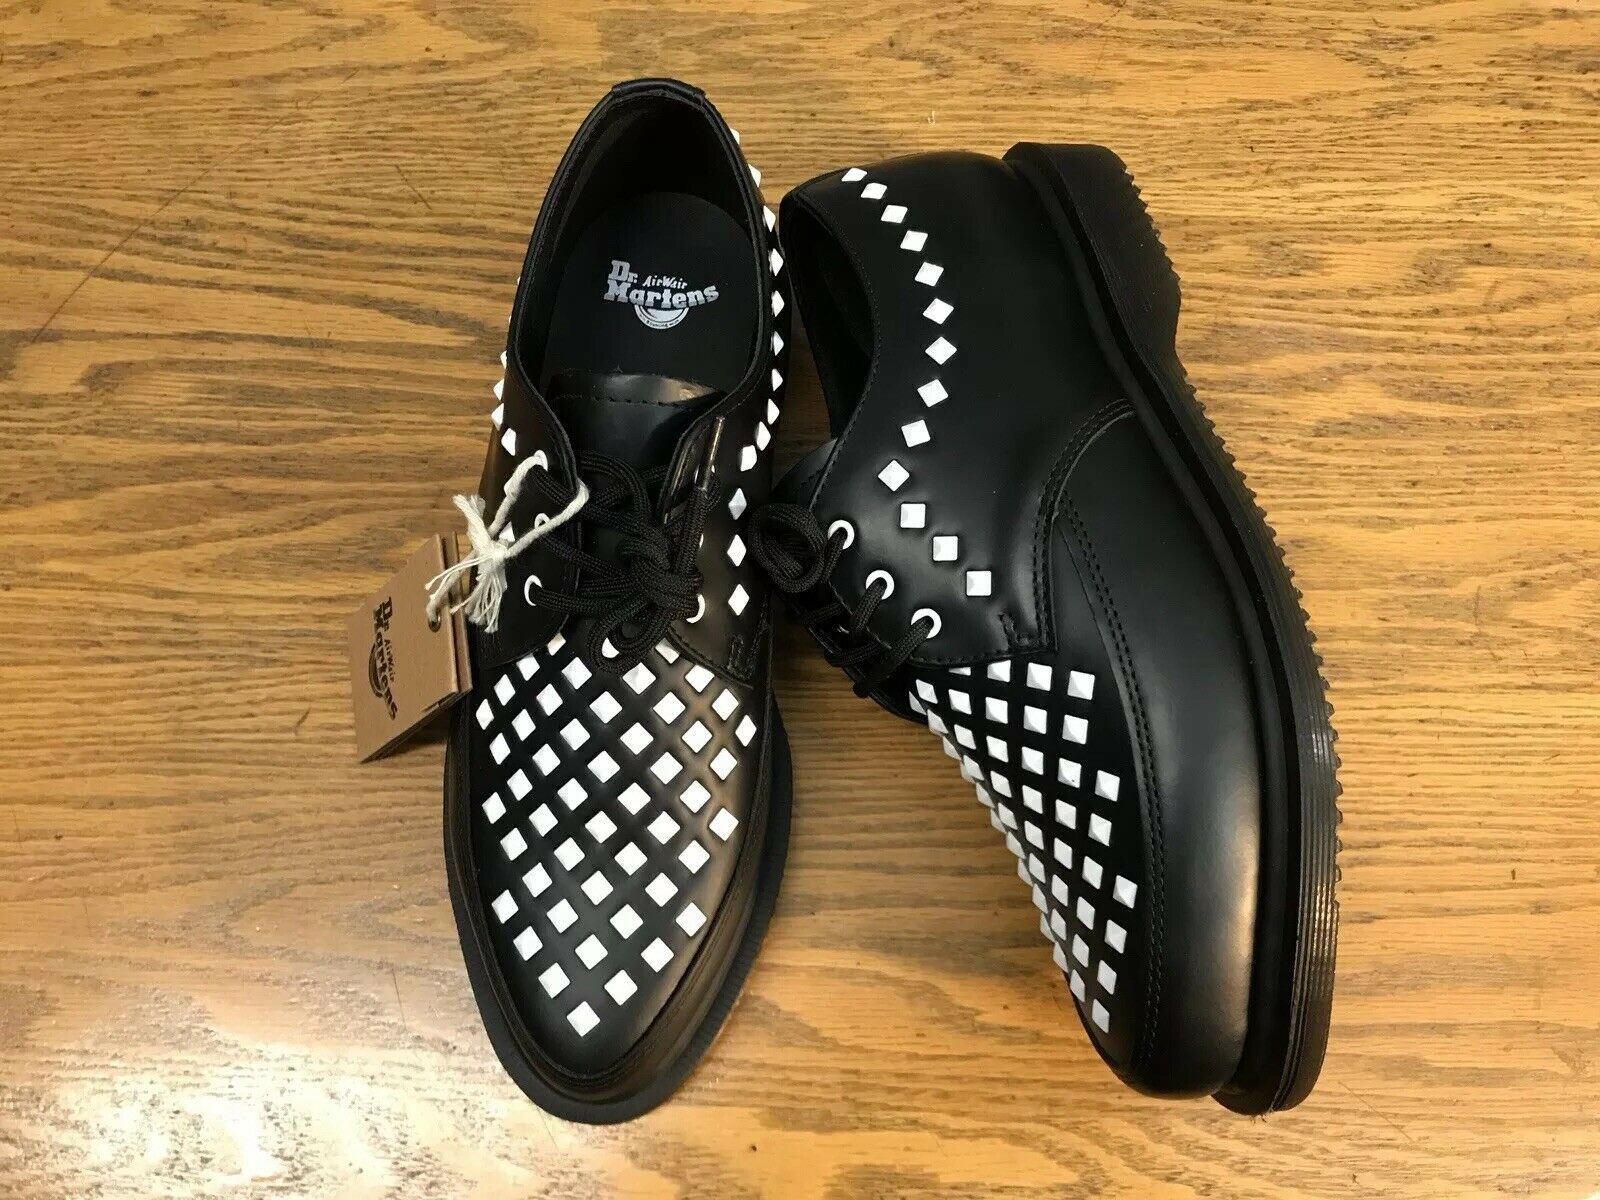 DR. MARTENS WILLIS LOAFER SHOES NEW MENS SIZE 7 WOMENS SIZE 8